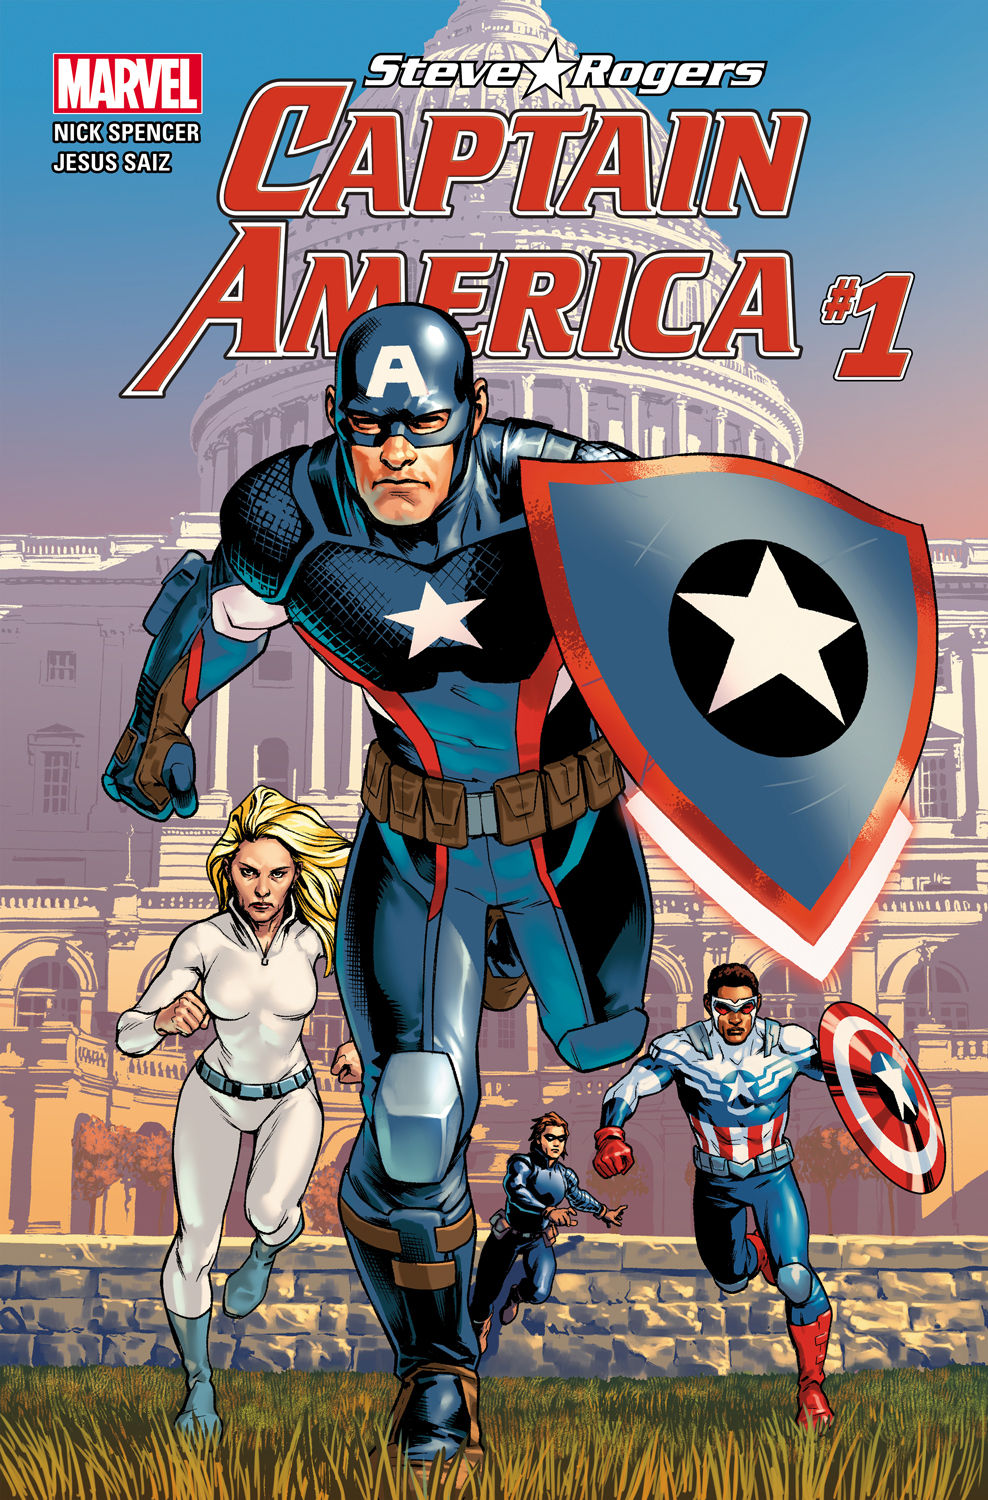 marvel s captain america steve rogers launches on free comic book day. Black Bedroom Furniture Sets. Home Design Ideas